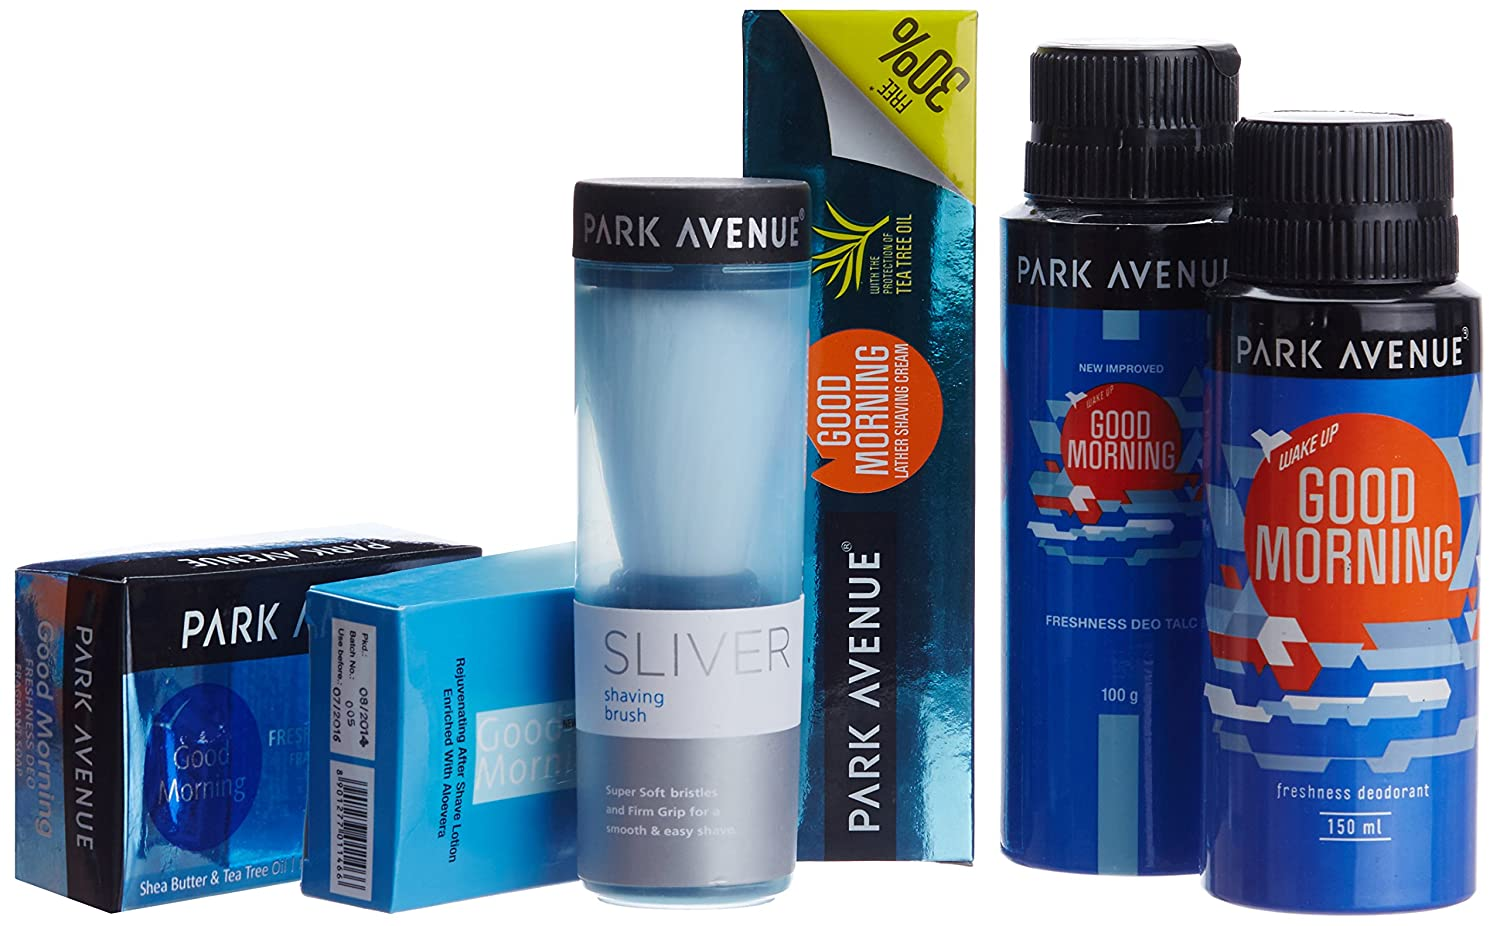 Park Avenue Good Morning Grooming Kit + Travel Pouch Free